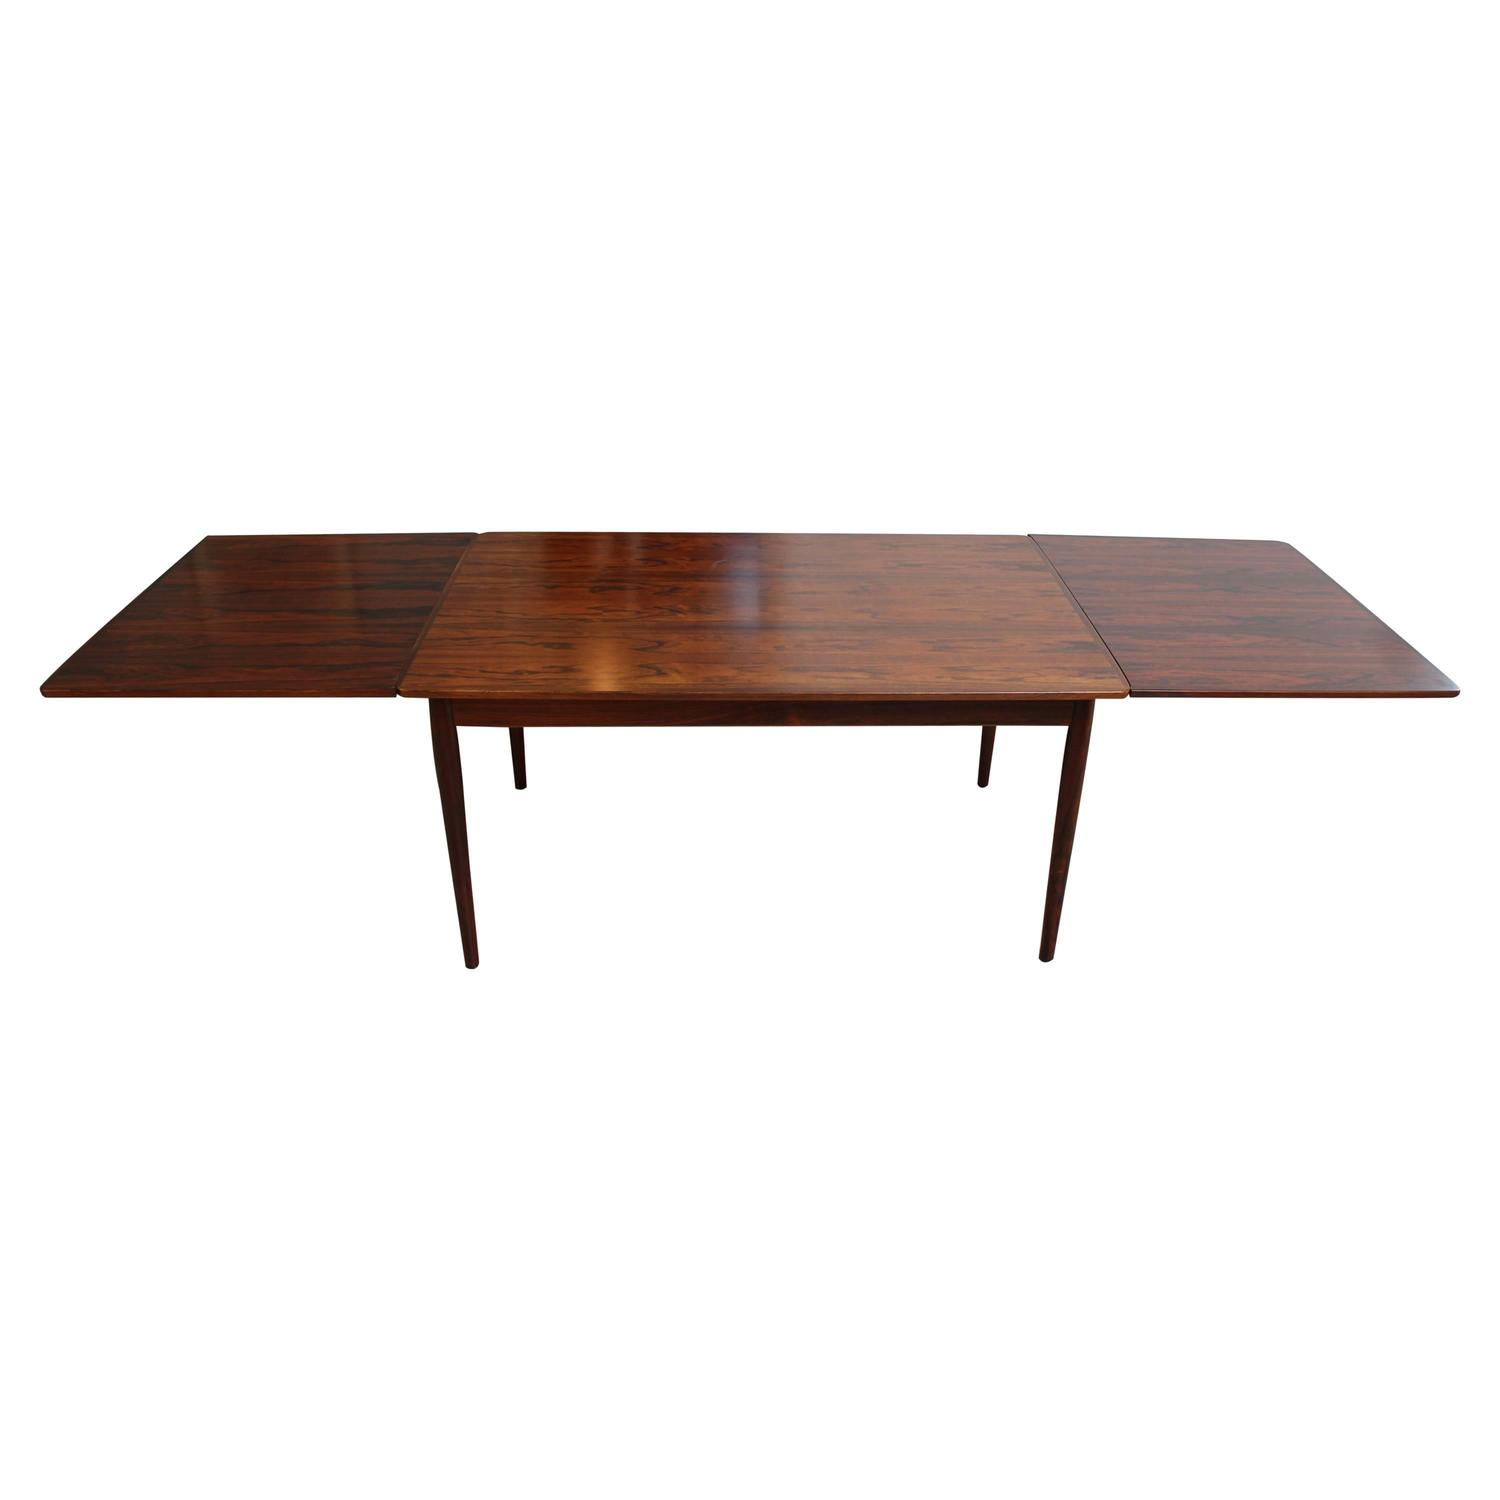 arne vodder 221 rosewood extension leaf dining table for